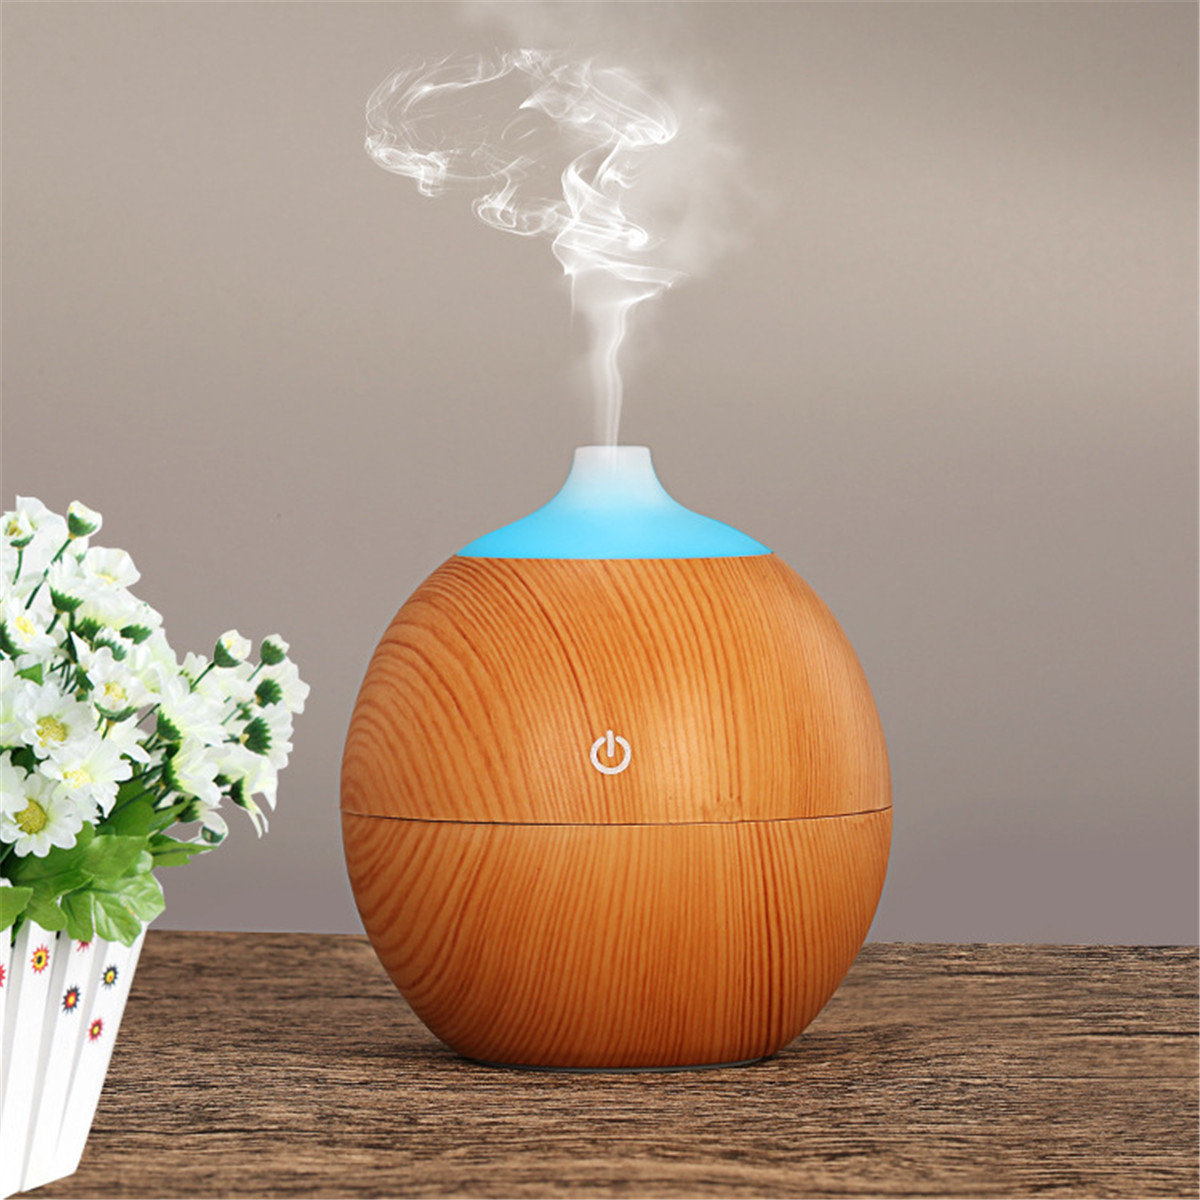 Air Ultrasonic Humidifier Essential Oil Diffuser Aroma Aromatherapy Purifier Intelligent LED